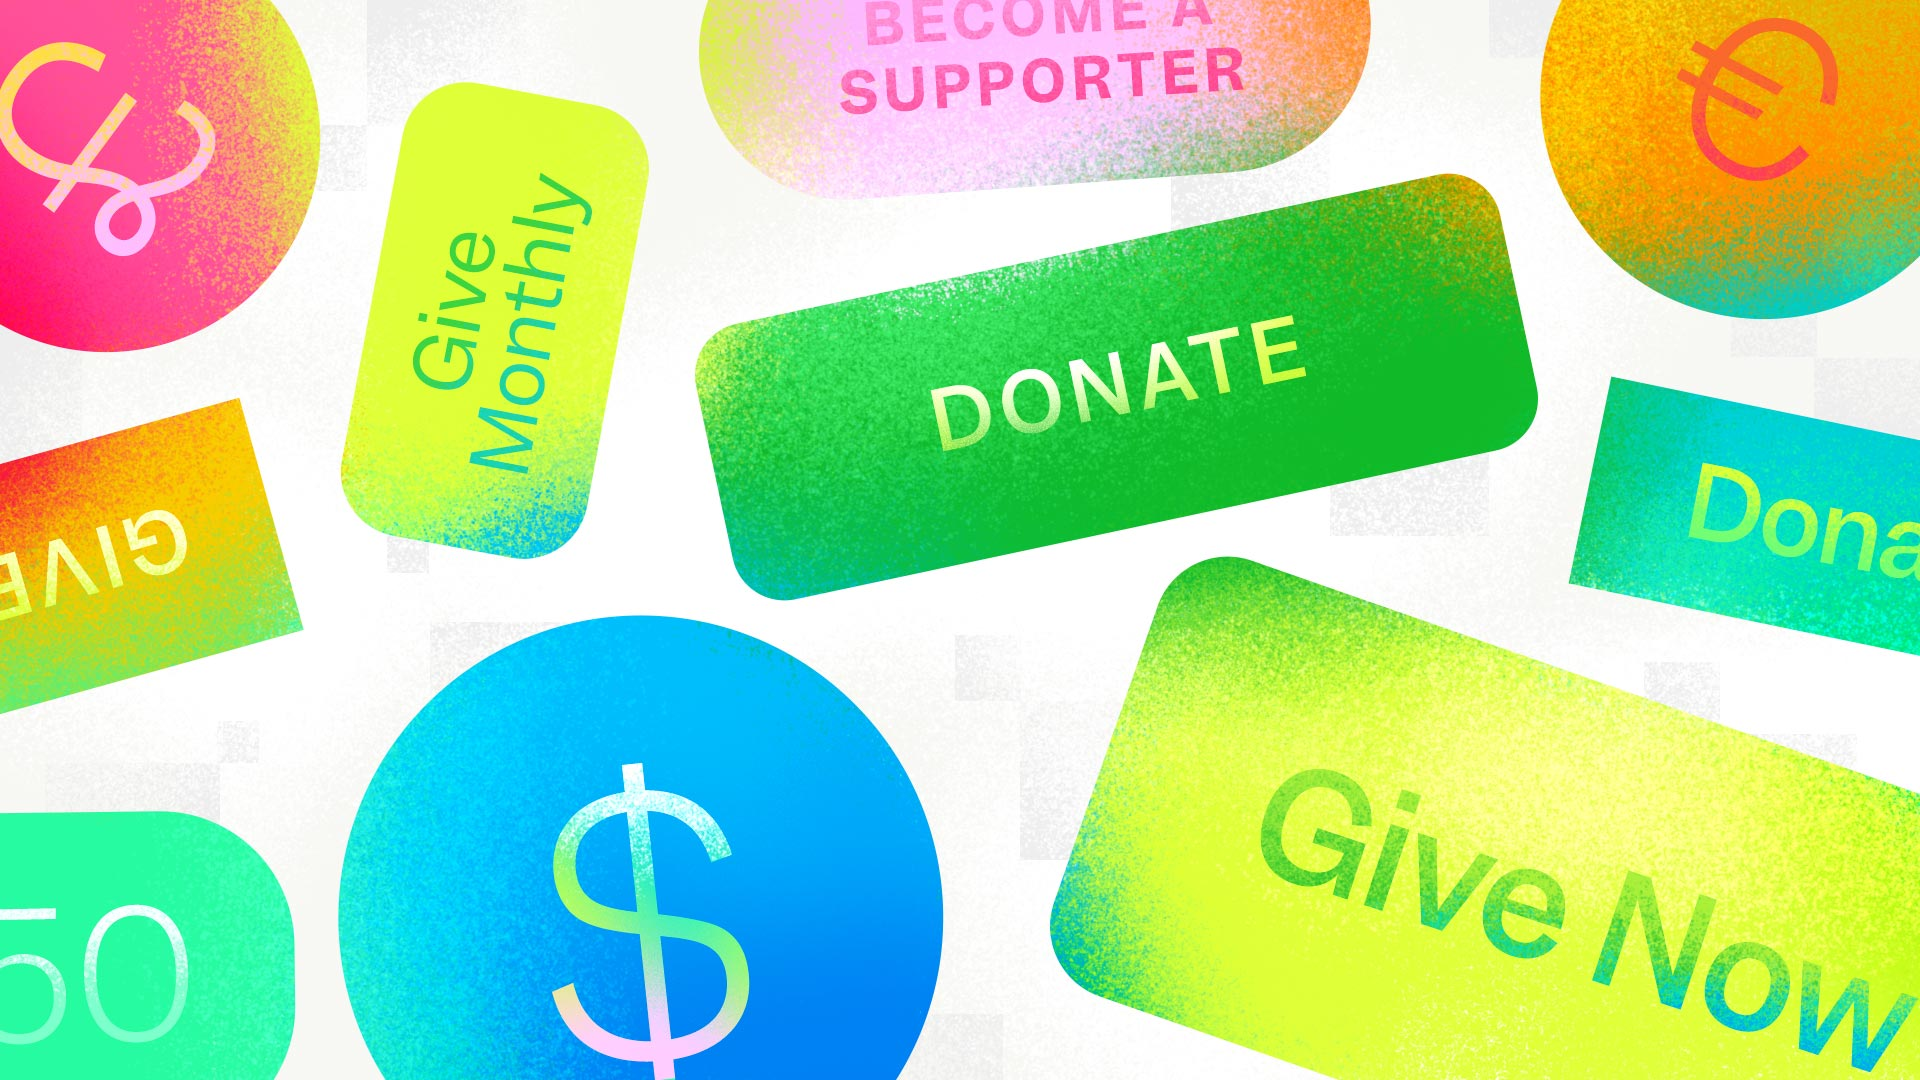 "Many different donation buttons fill the screen, all piled together like a Tetris game. The buttons have different donation call-to-action text on them, such as ""Donate"", Give Now"", or just a currency symbol like $."